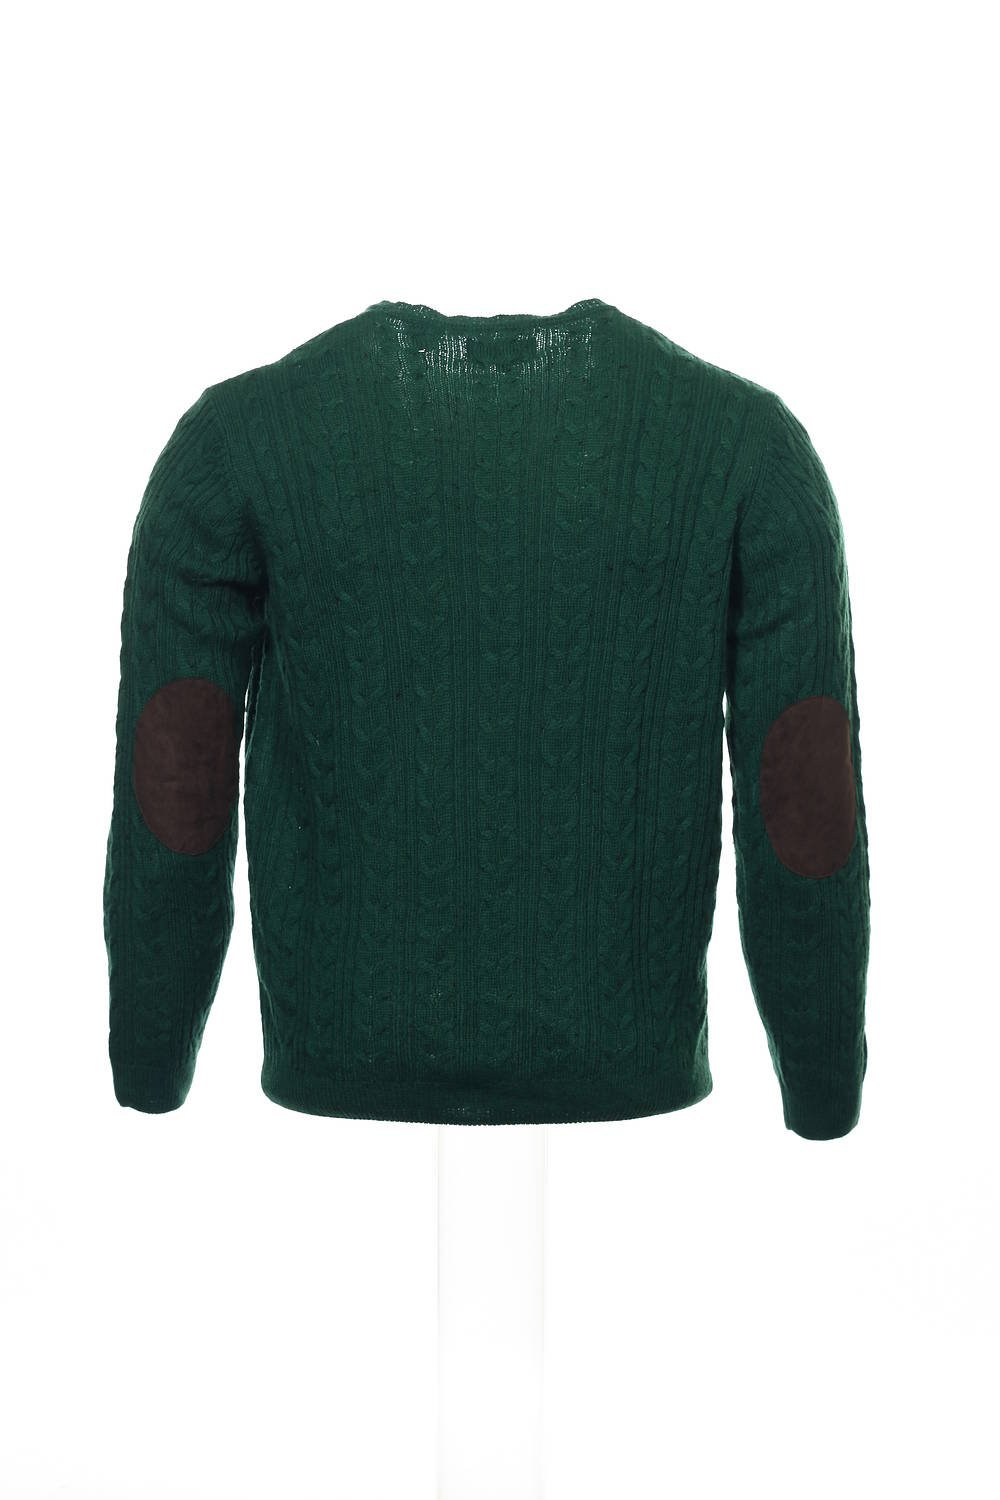 Argyle Culture Pine Green Sweater Medium by Argyleculture by Russell Simmons (Image #3)